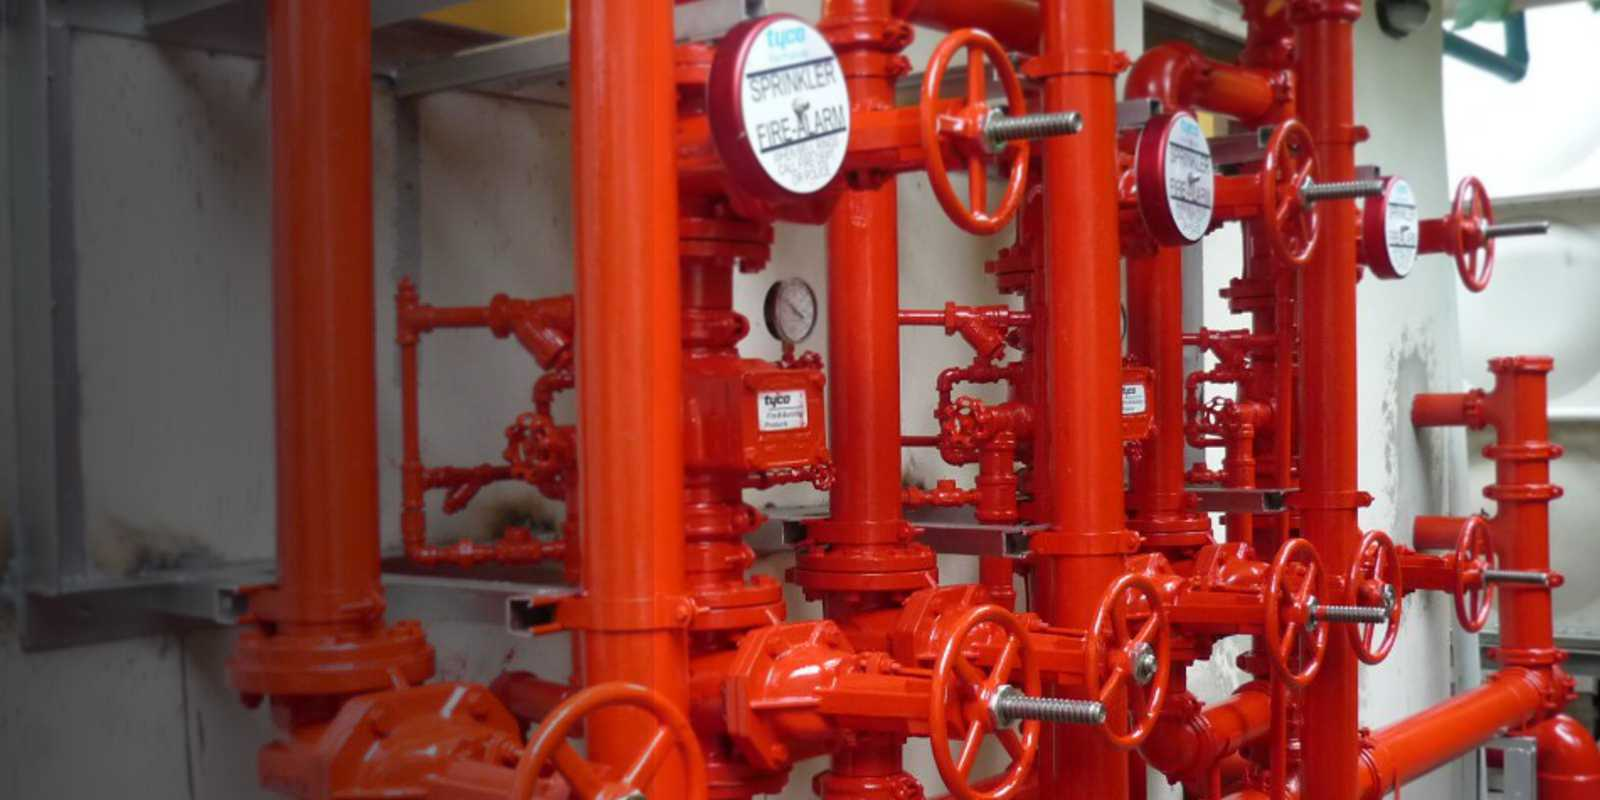 Fire protection devices and installations